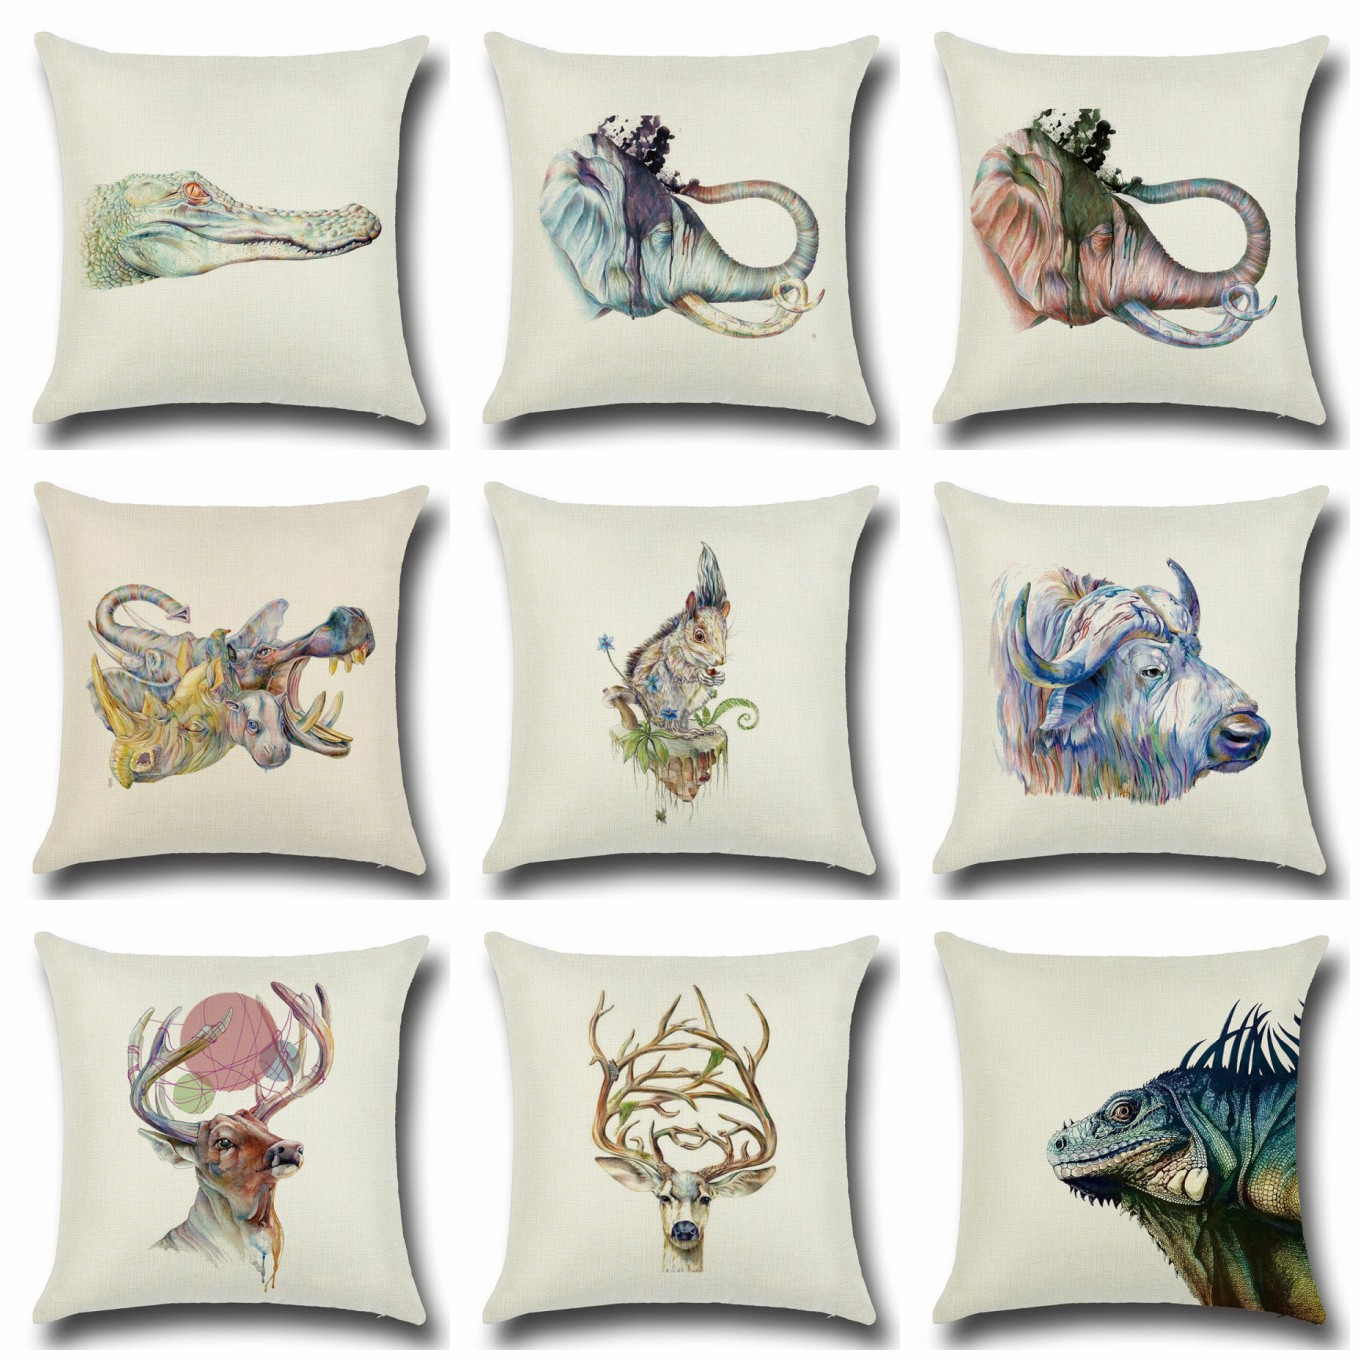 HGLEGYW Animal Pillow Case Throw Pillowcase Cotton Linen Printed Pillow Covers For  Office Home Textile